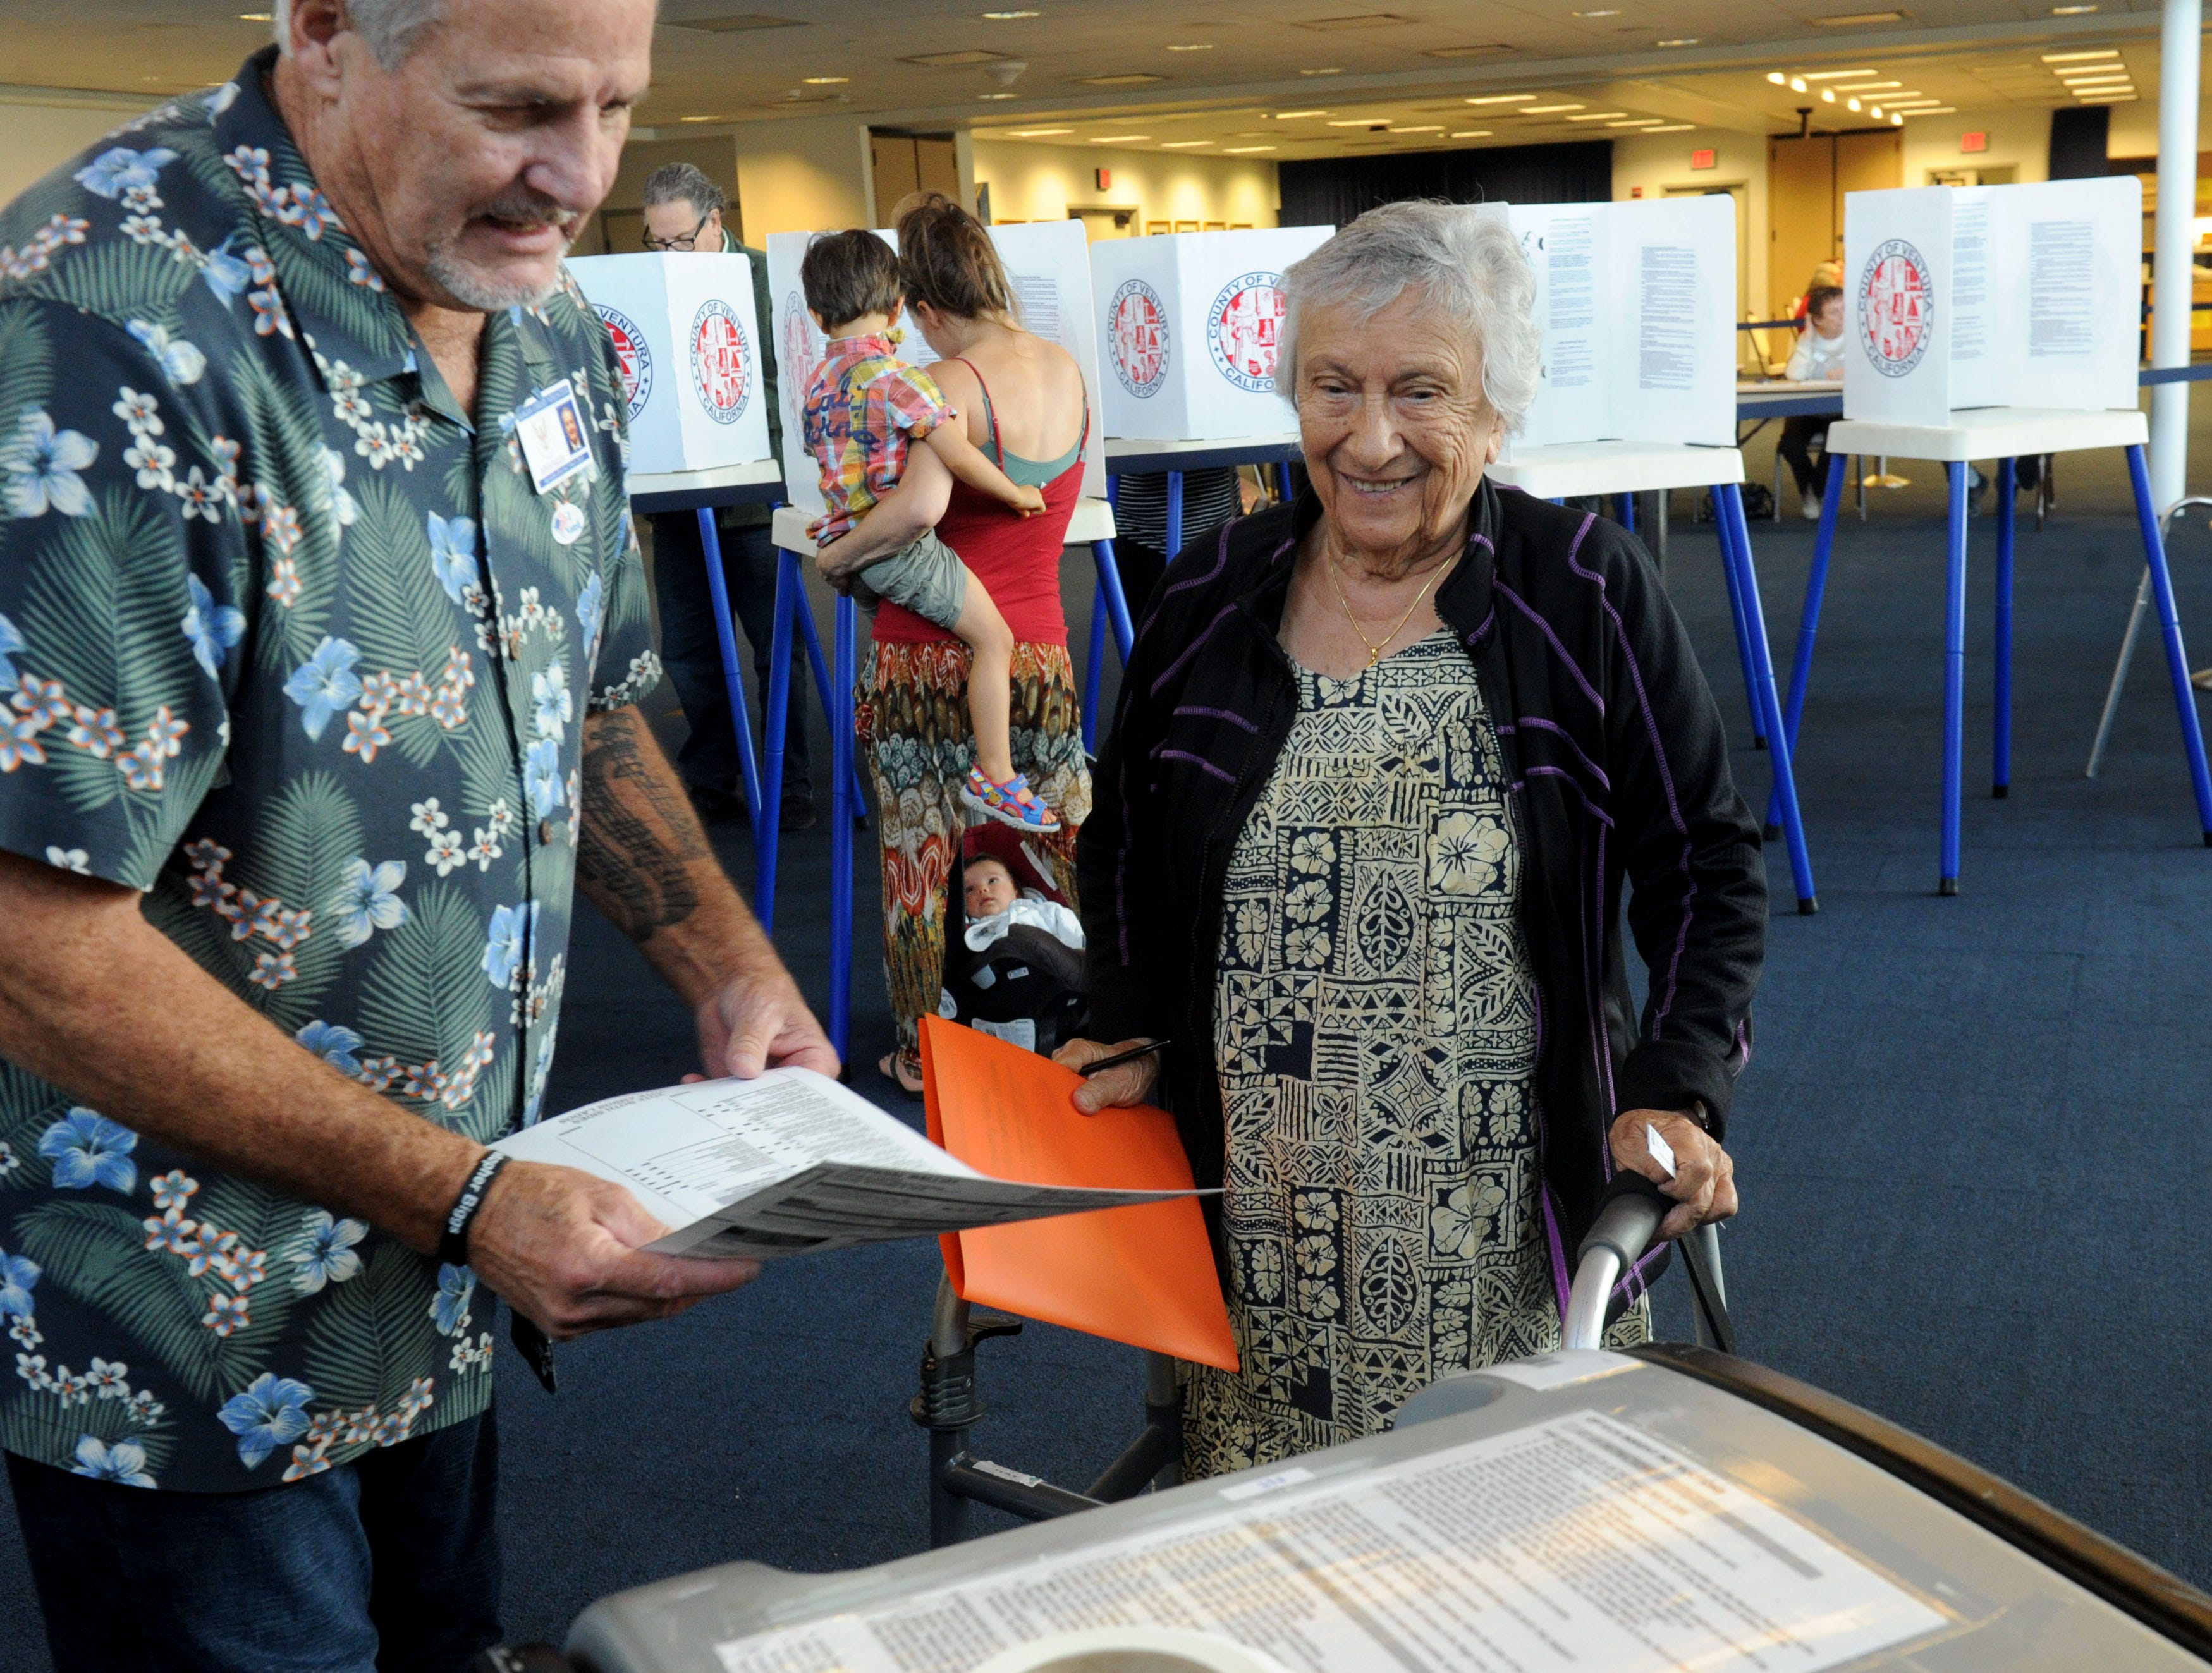 John Biggs, an inspector at polling places, helps Mary Pavia cast her vote Tuesday at the Ronald Reagan Presidential Library & Museum in Simi Valley. The library had a steady stream of voters.